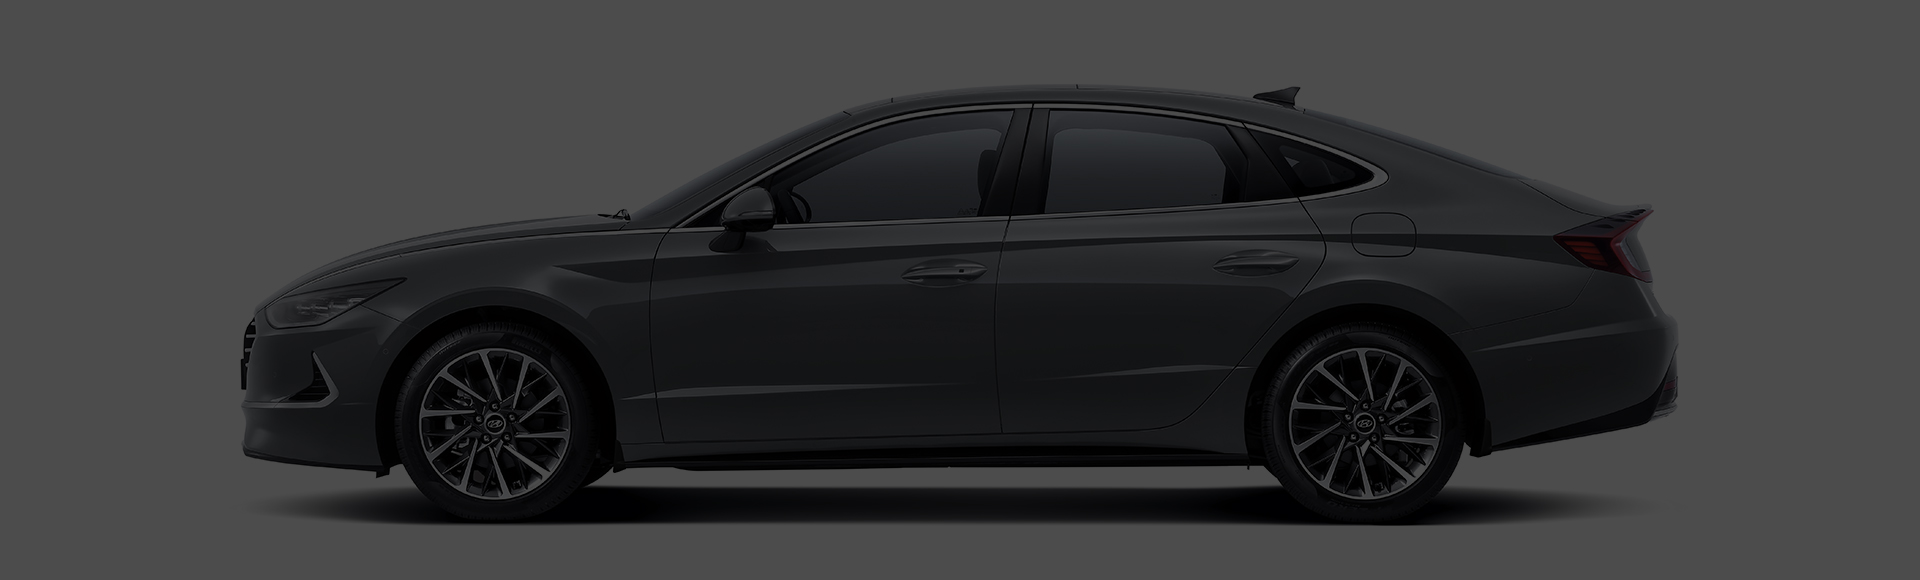 Sonata exterior side design